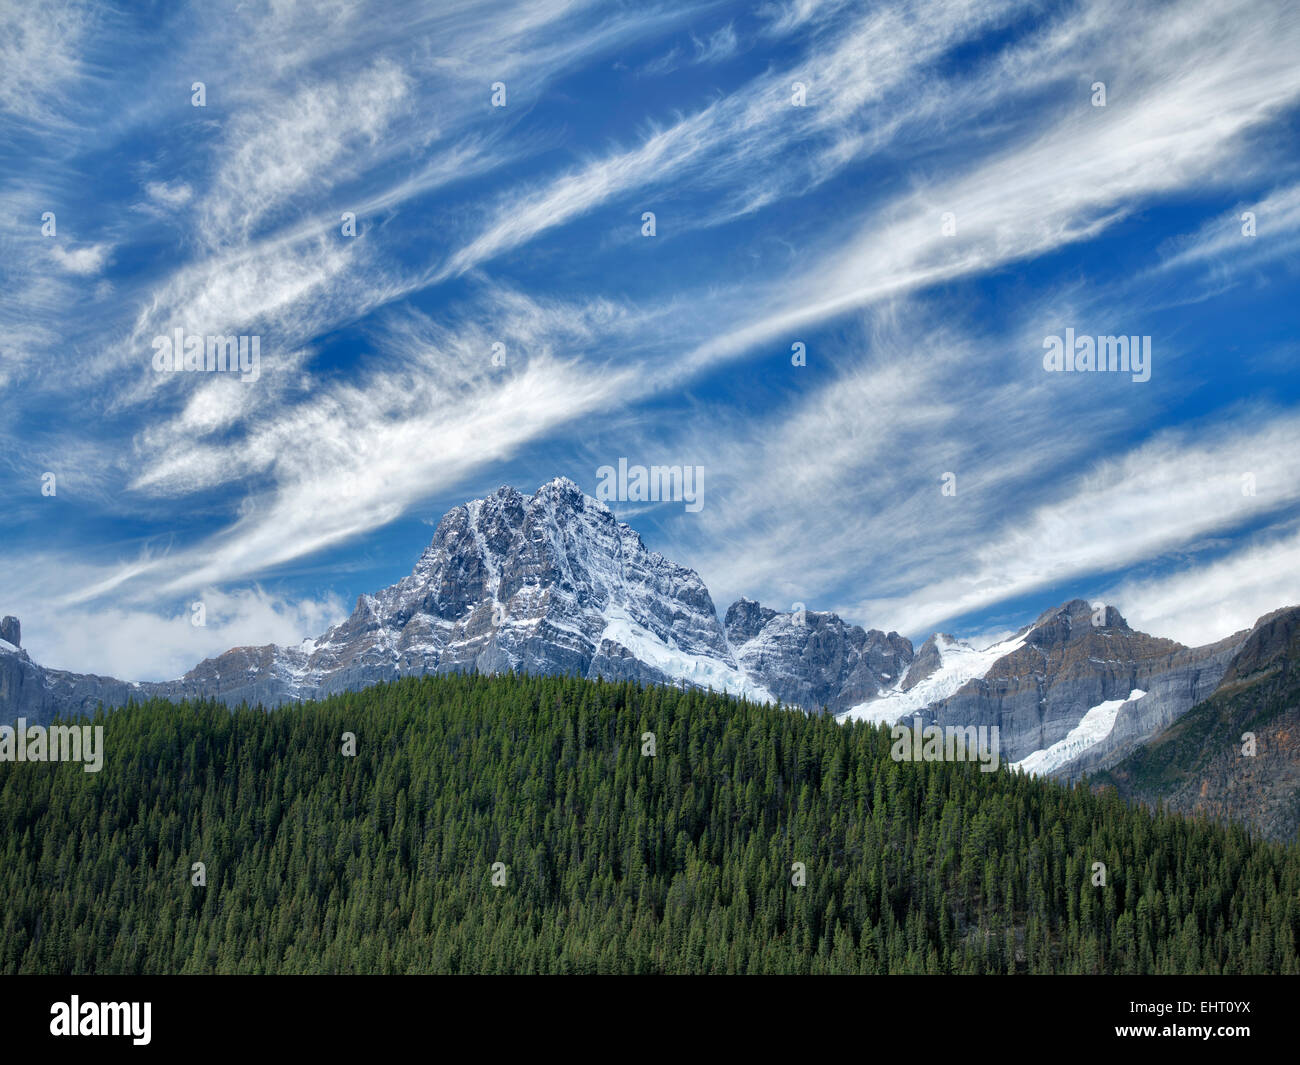 Lacs et chutes de neige et de Peake Maison nuages. . Le parc national Banff. L'Alberta, Canada Photo Stock